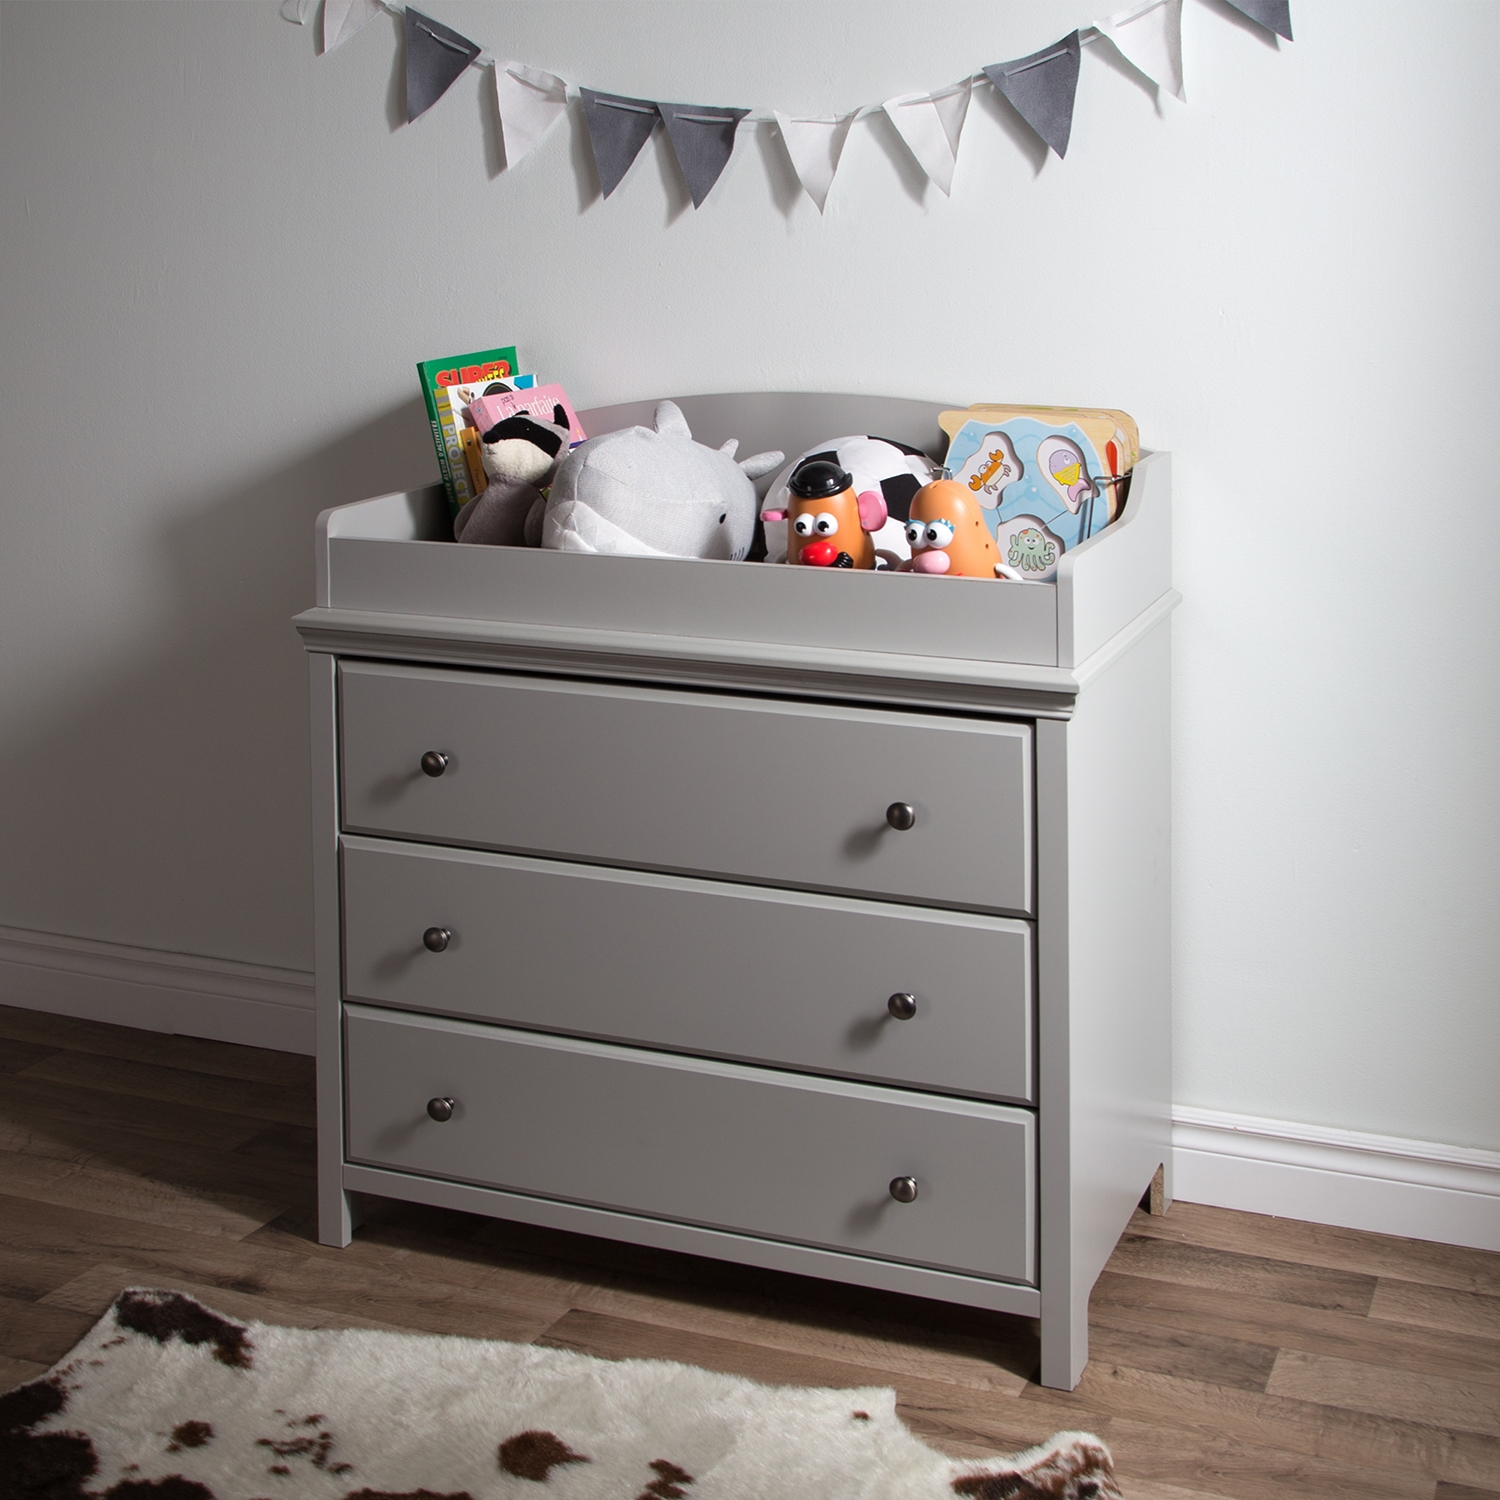 Cotton Candy Changing Table - 3 Drawers, Soft Gray - SS-9020330